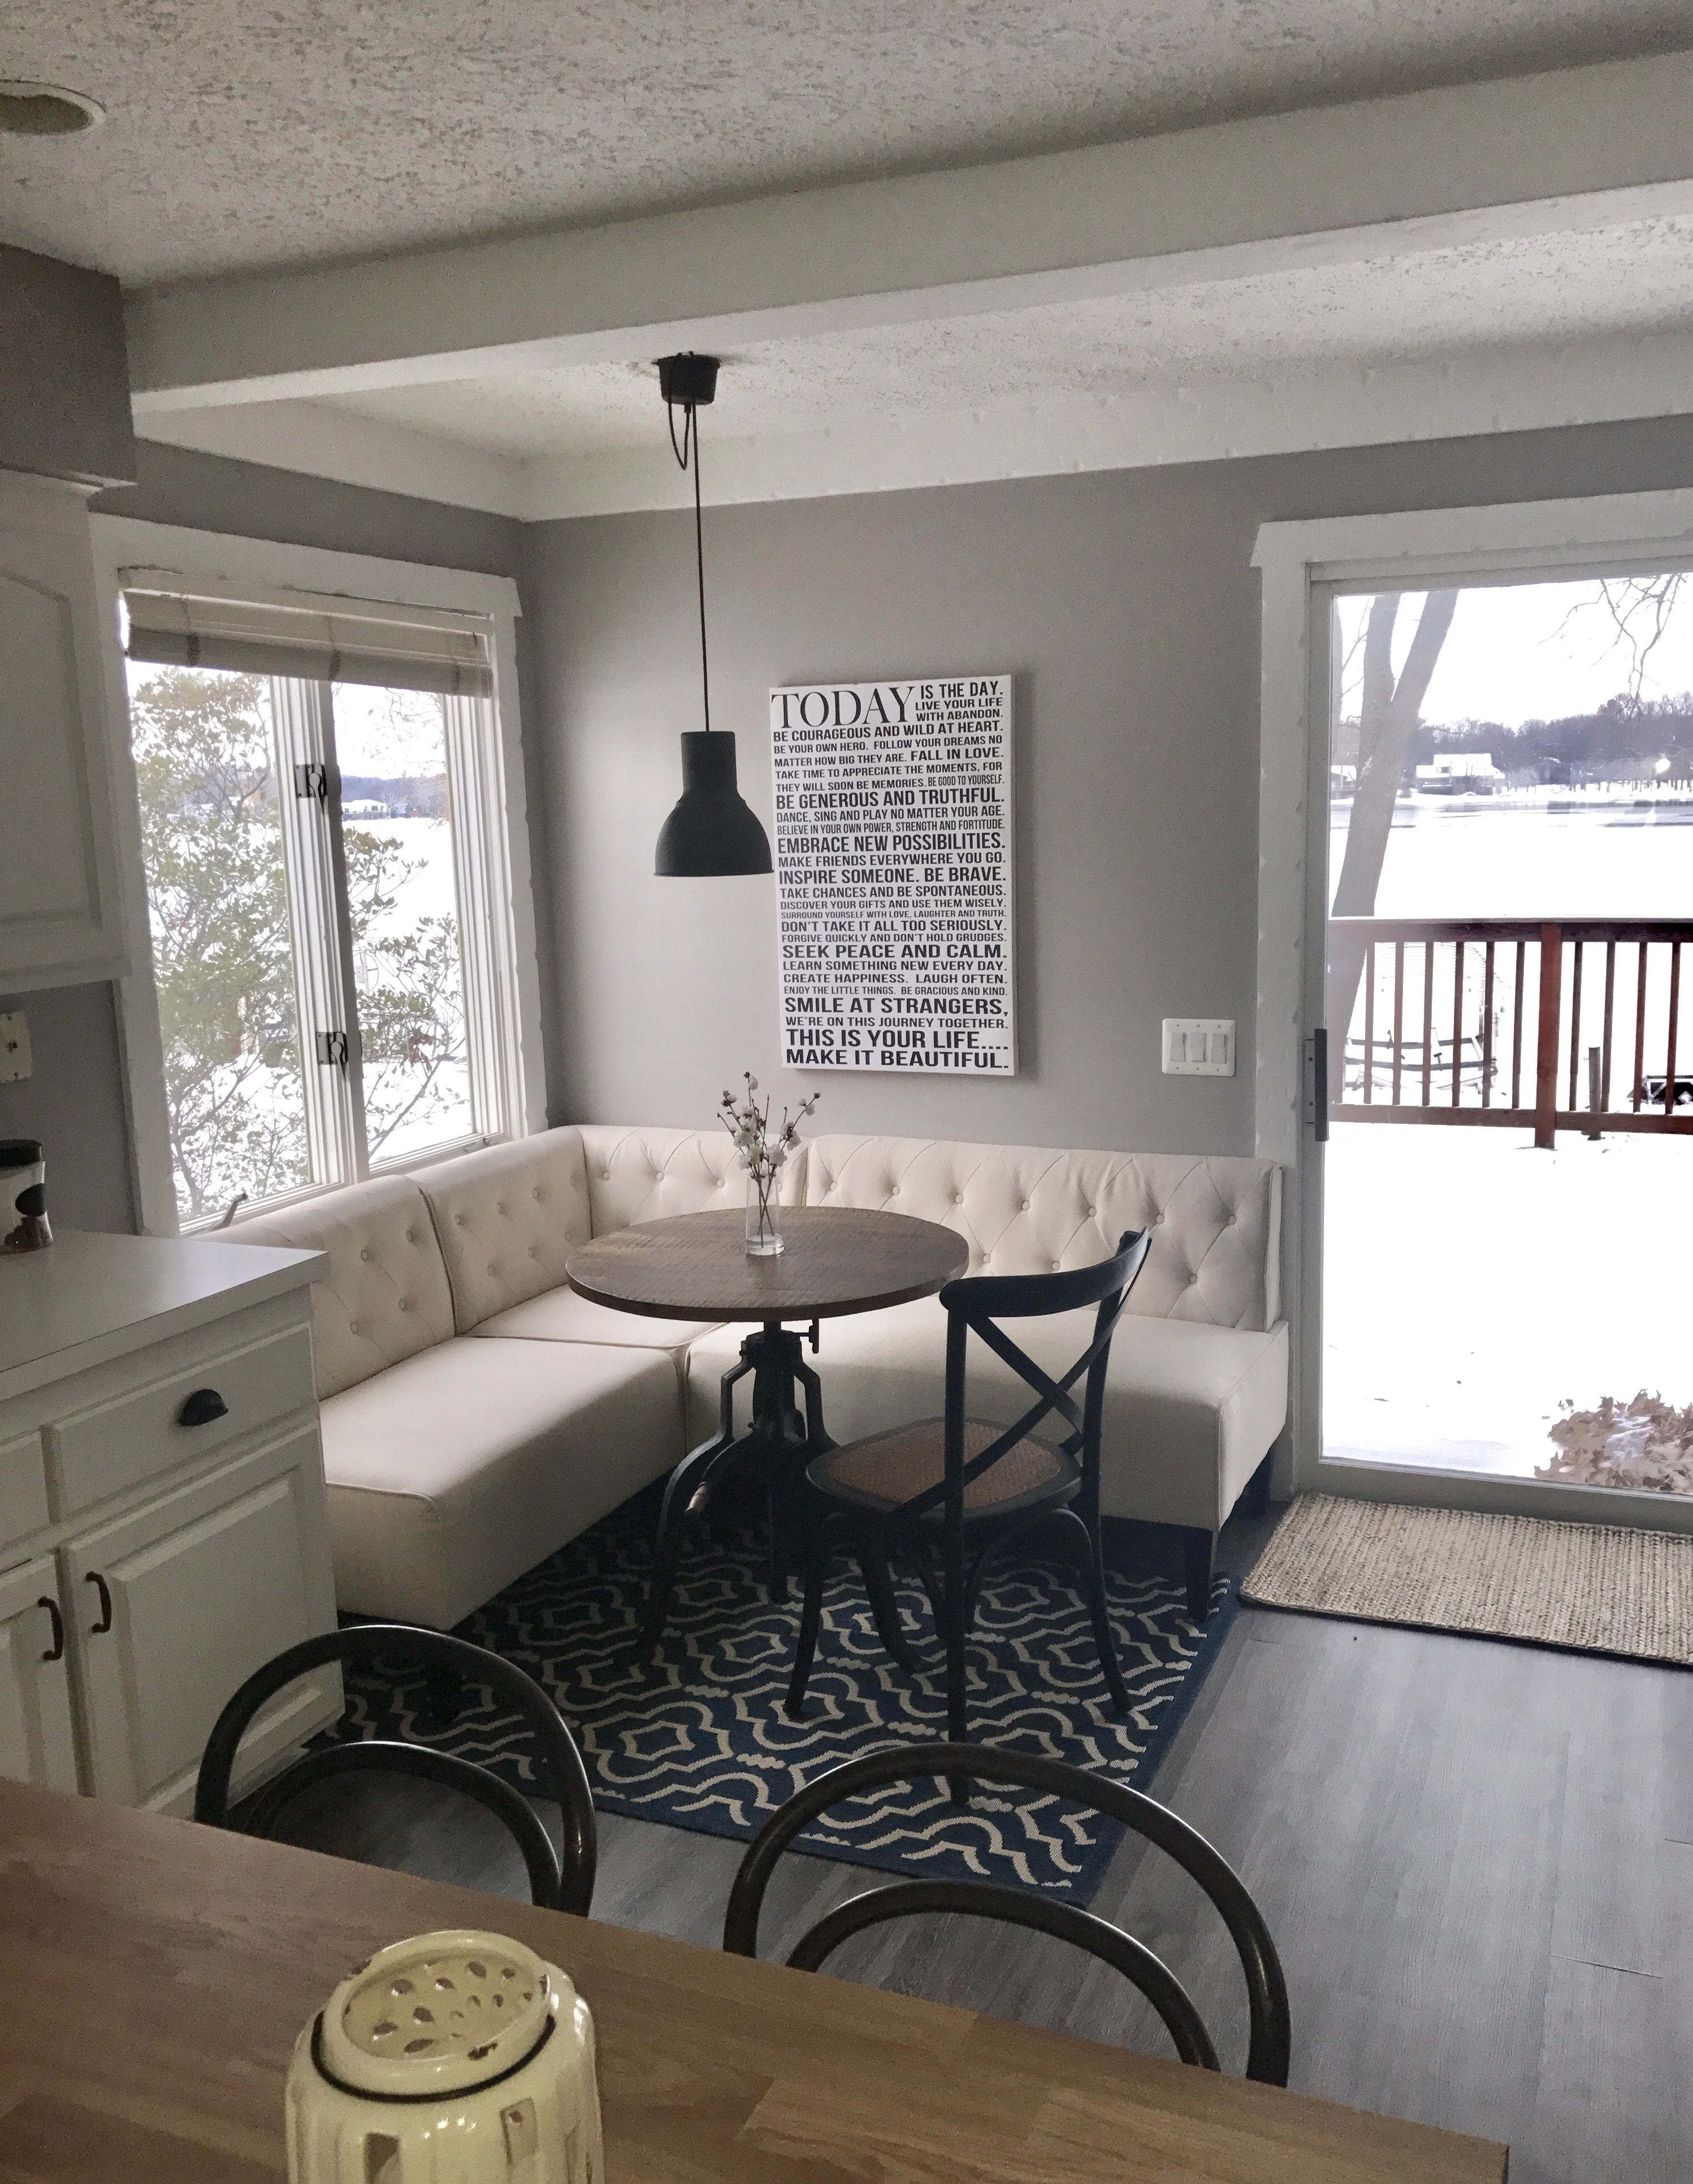 Cozy Breakfast Nook Paint Color Behr Park Ave Pendant Light Ikea Iron Crank Table Home Depot Upholstered Banquette Bench